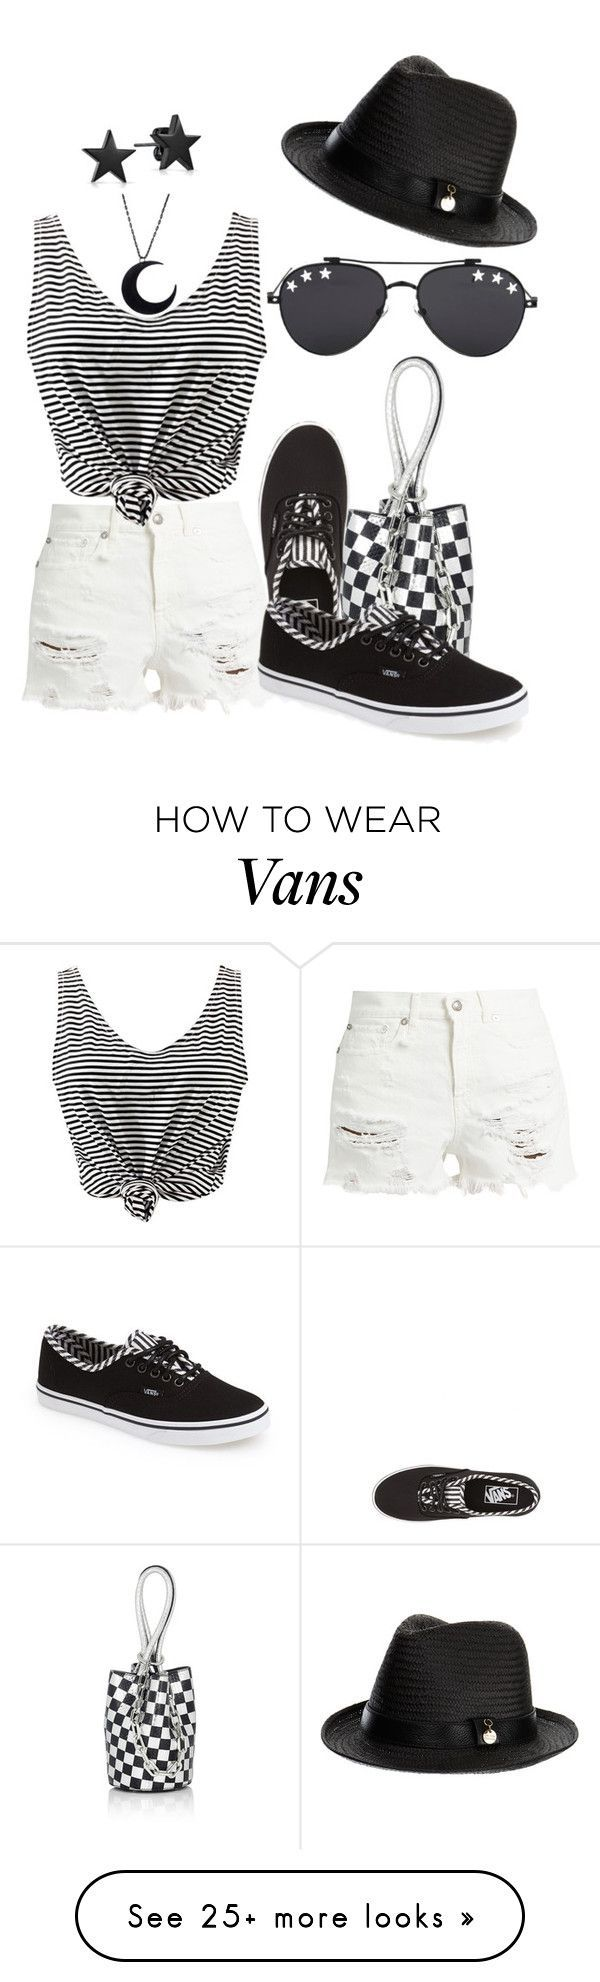 """Cool Vans Shoes """"Denim and Stripes - 05.2017"""" by louvillia on Polyvore featuring R13, ..."""